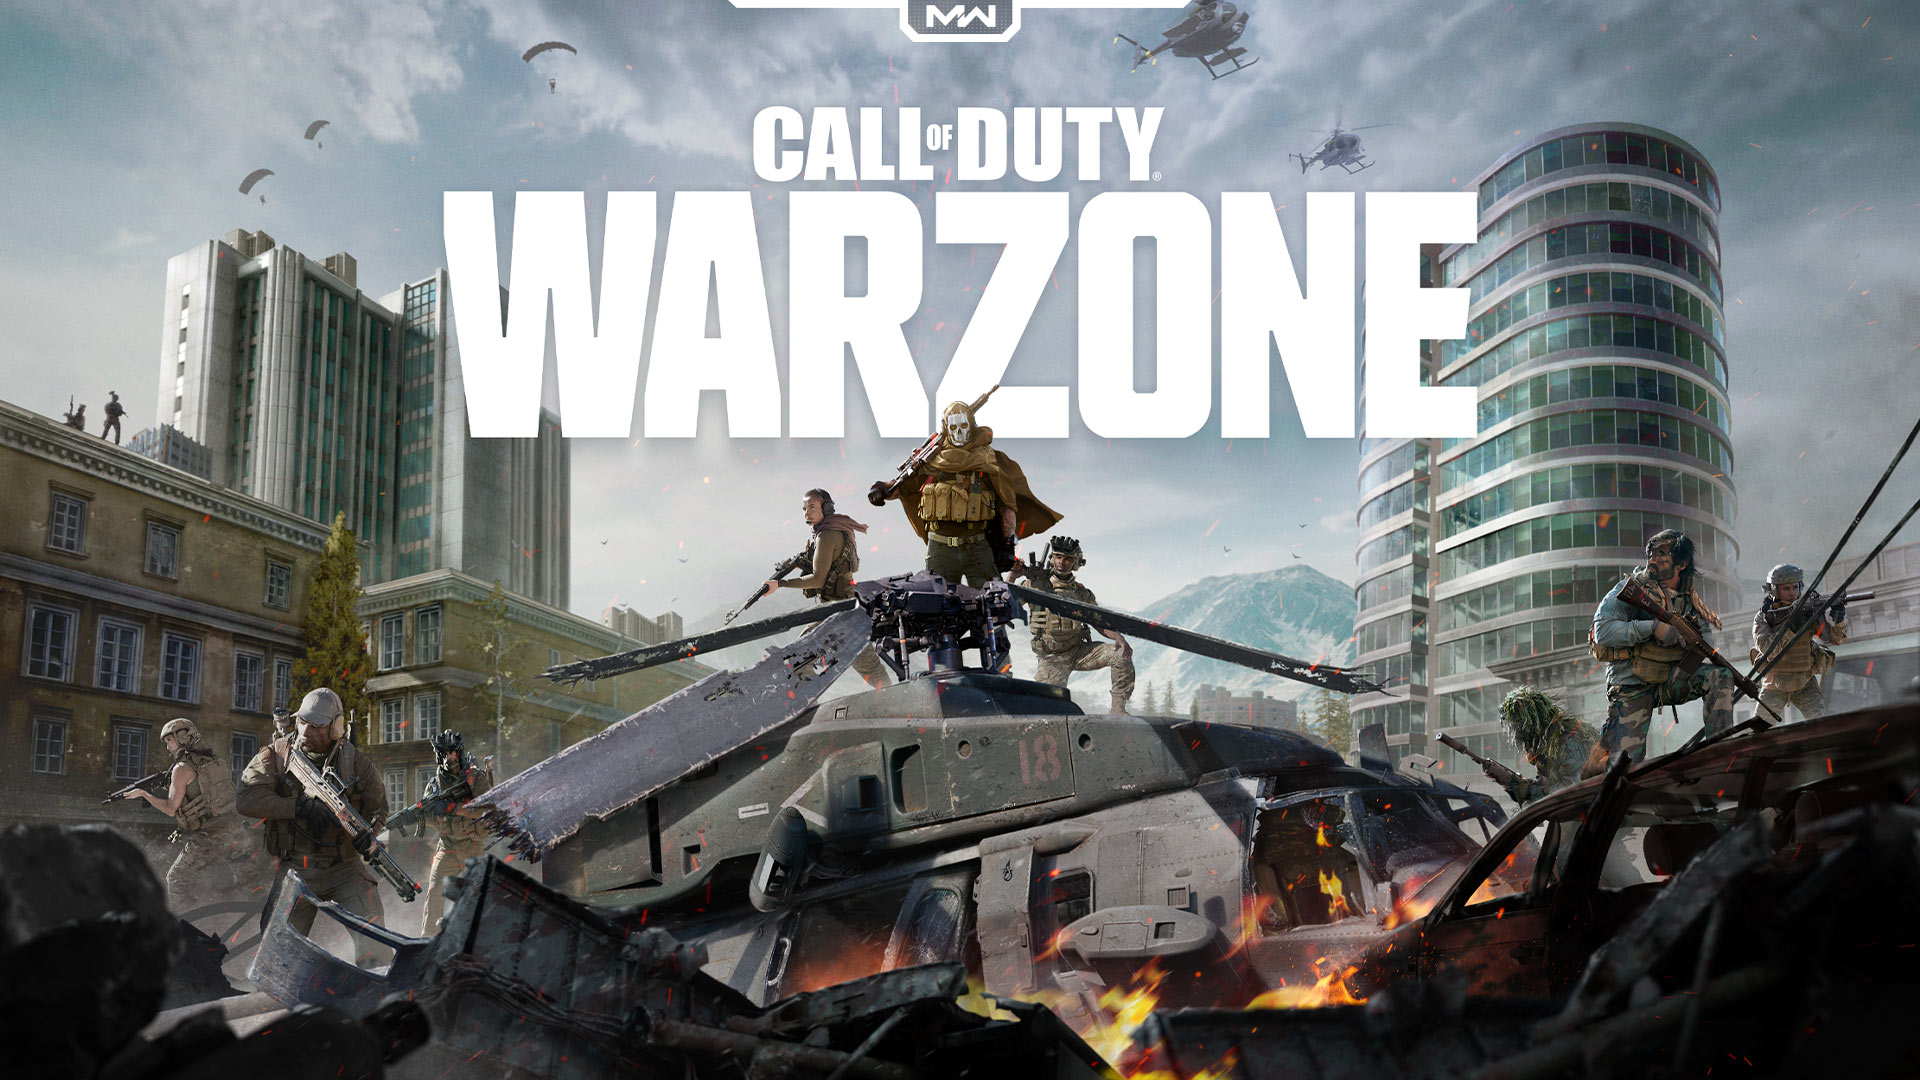 warzone, loadouts, Call of Duty